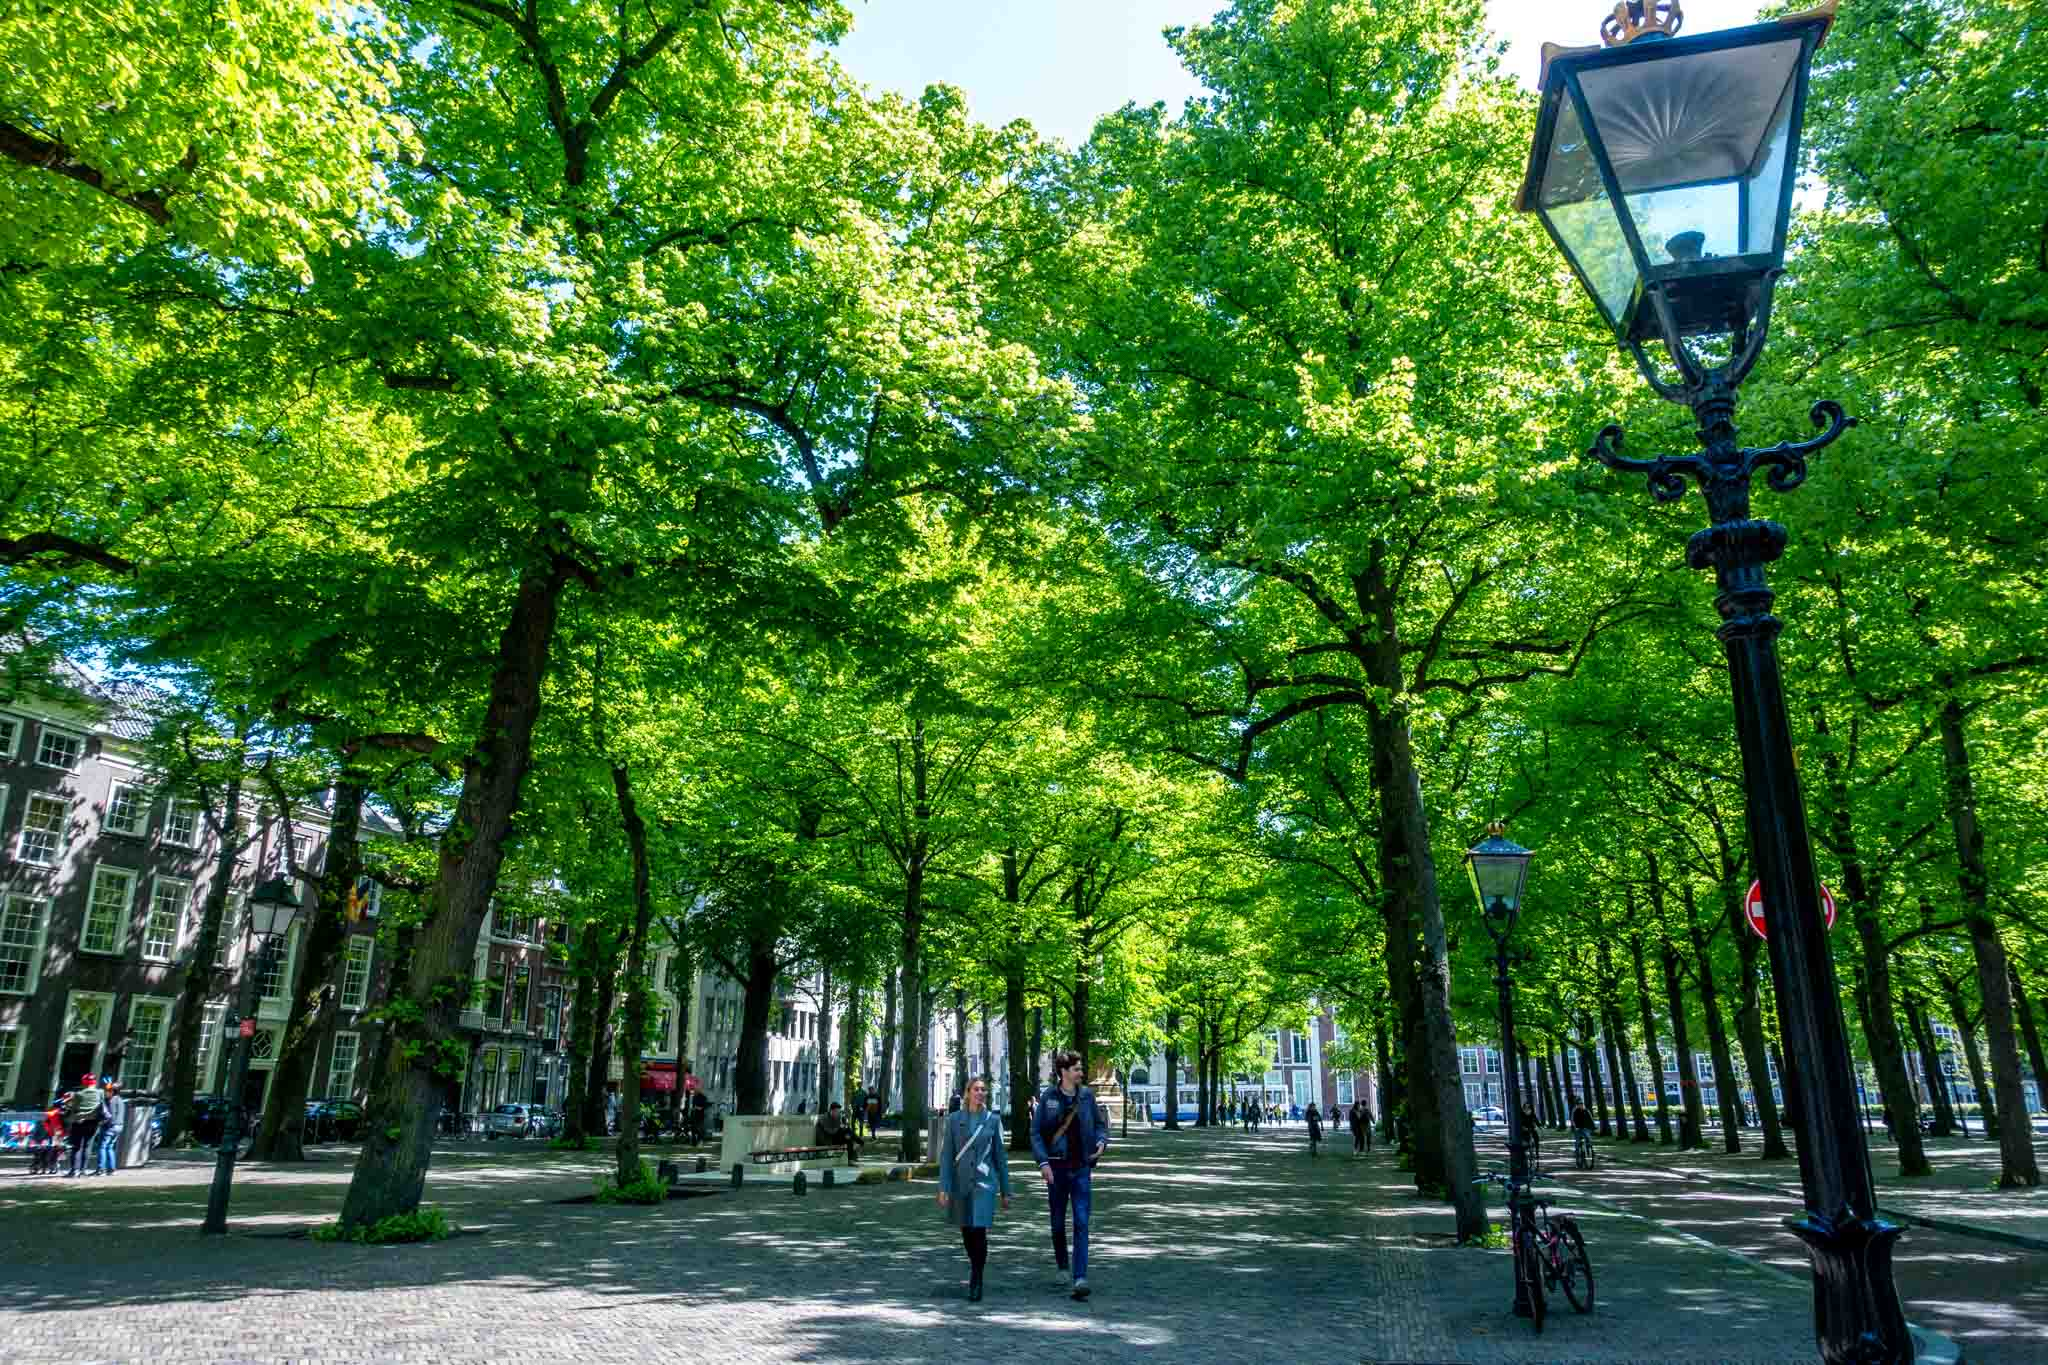 People walking under a row of trees